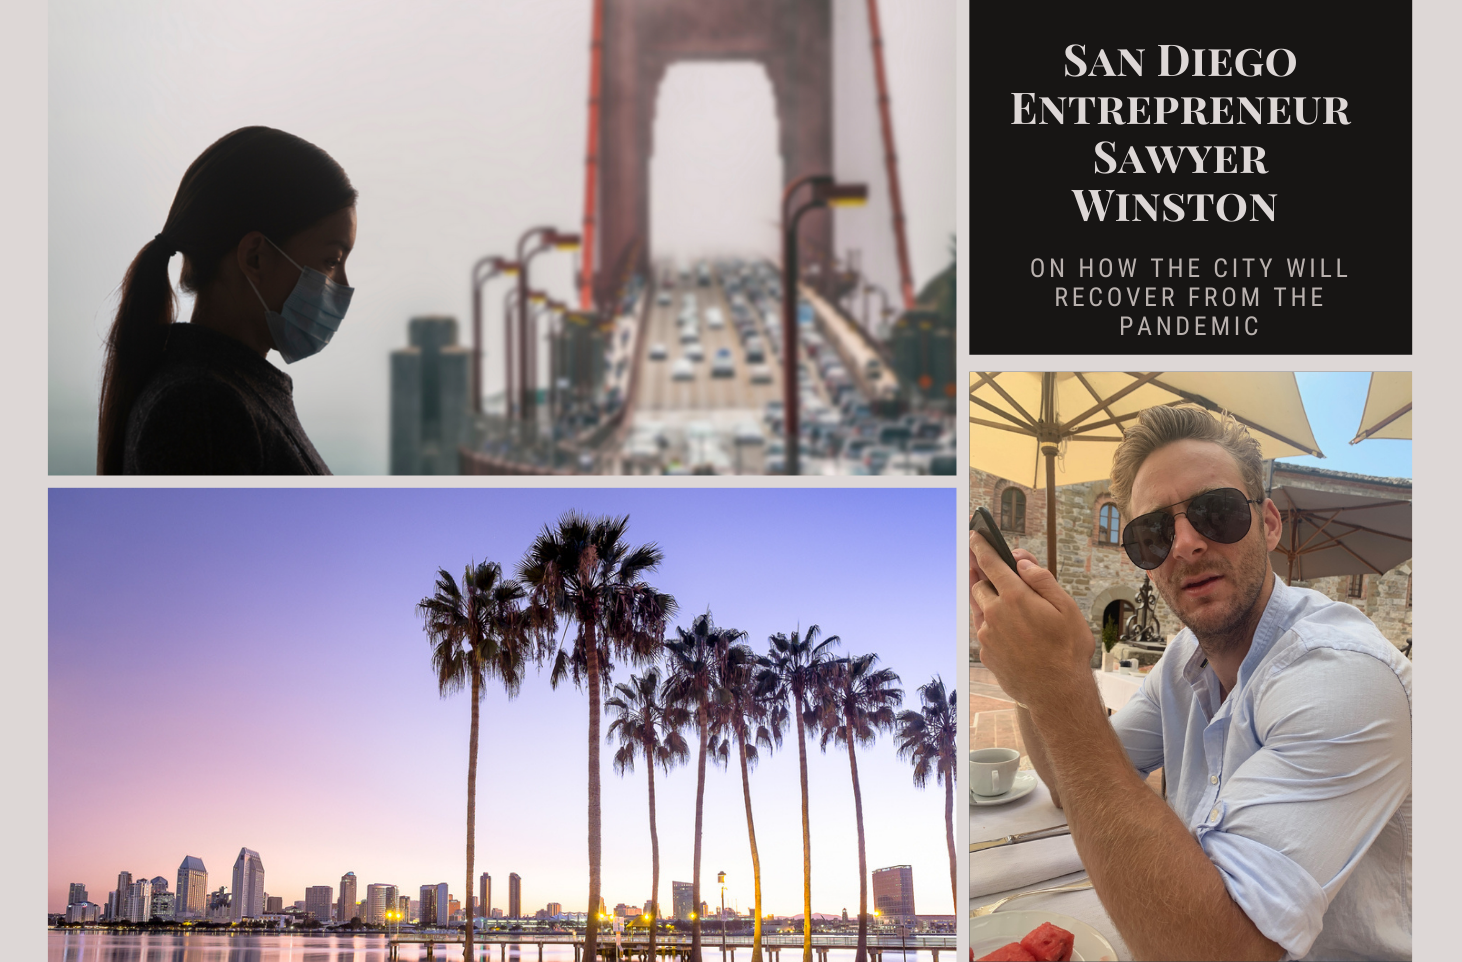 San Diego Entrepreneur Sawyer Winston On How The City Will Recover From The Pandemic